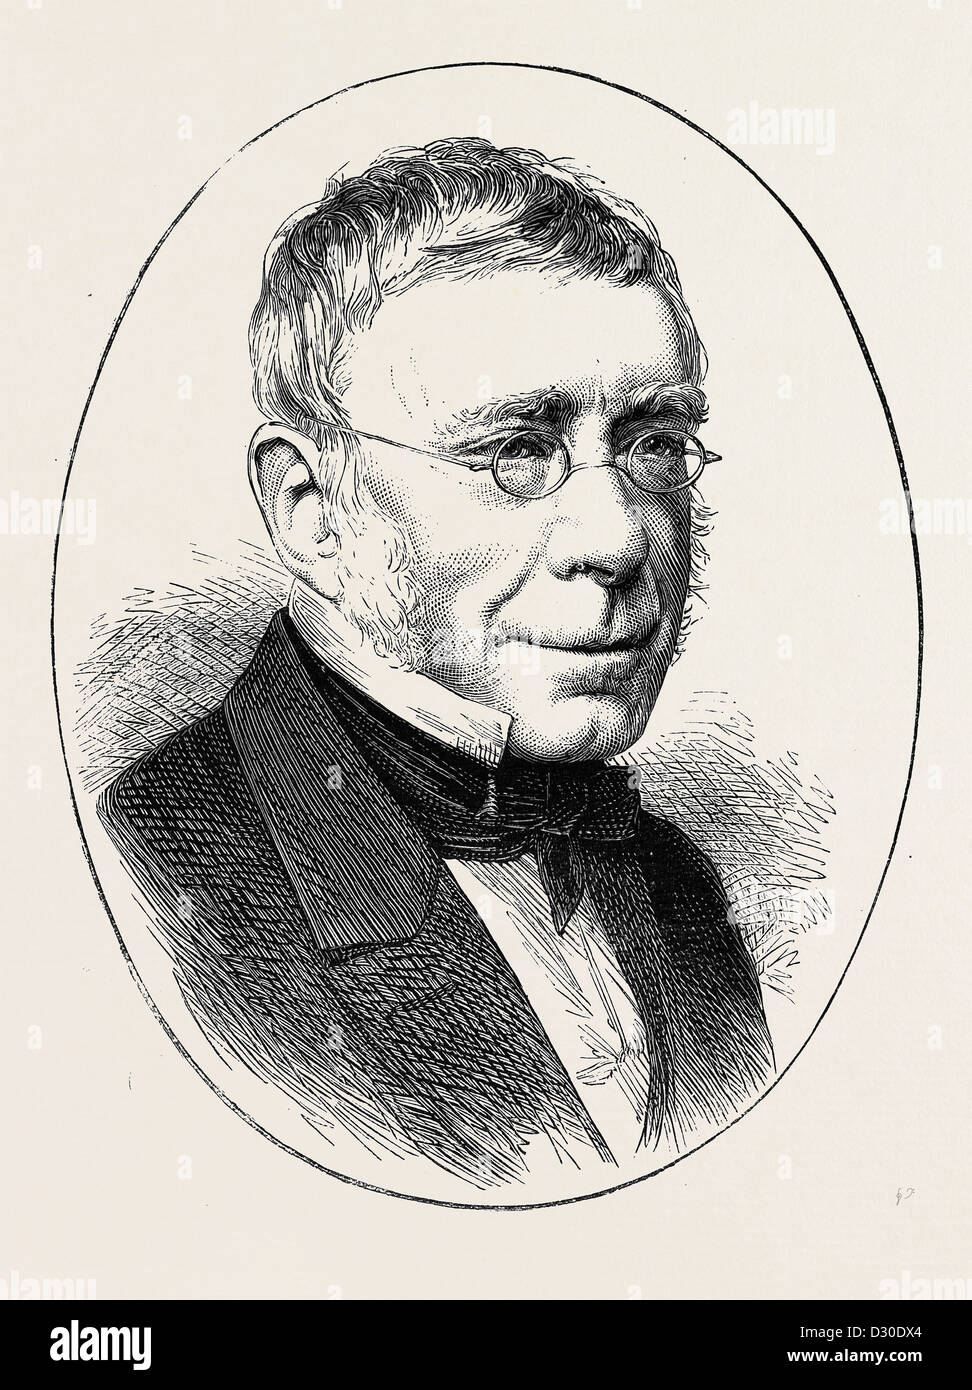 SIR GEORGE BIDDELL AIRY, THE ASTRONOMER ROYAL - Stock Image